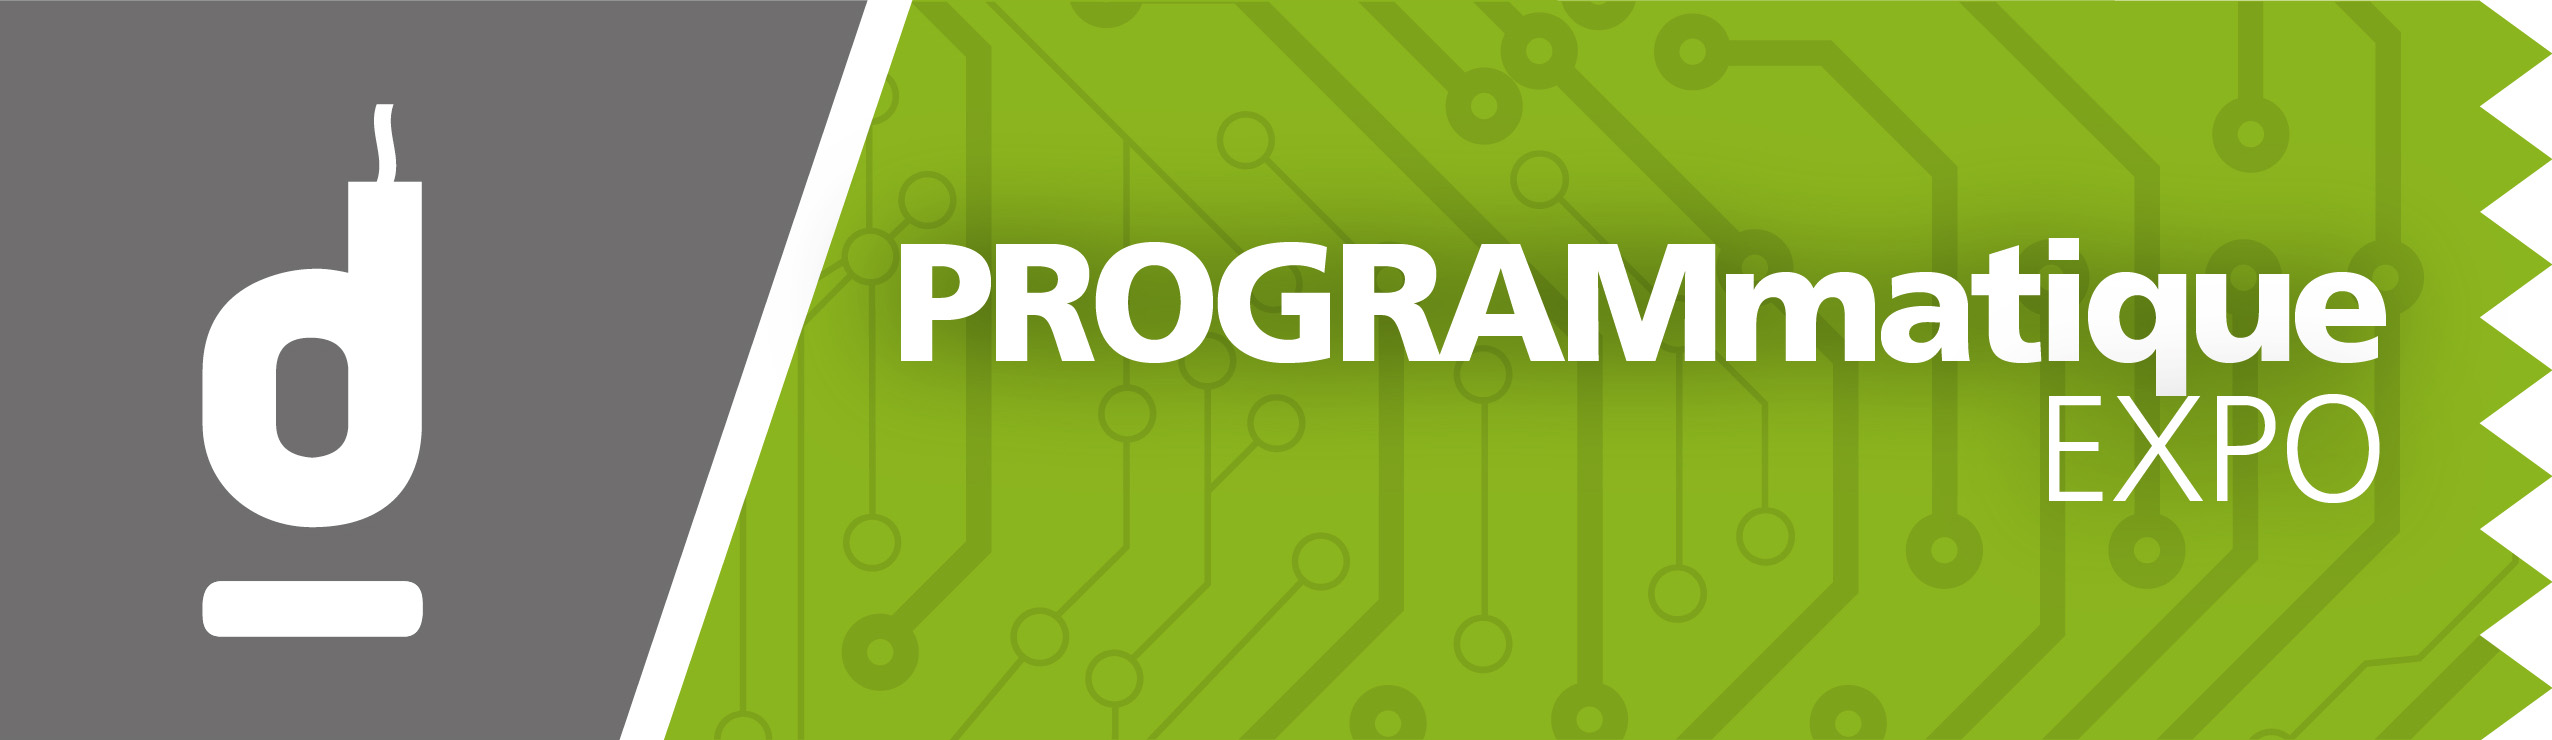 programmatique expo 2016